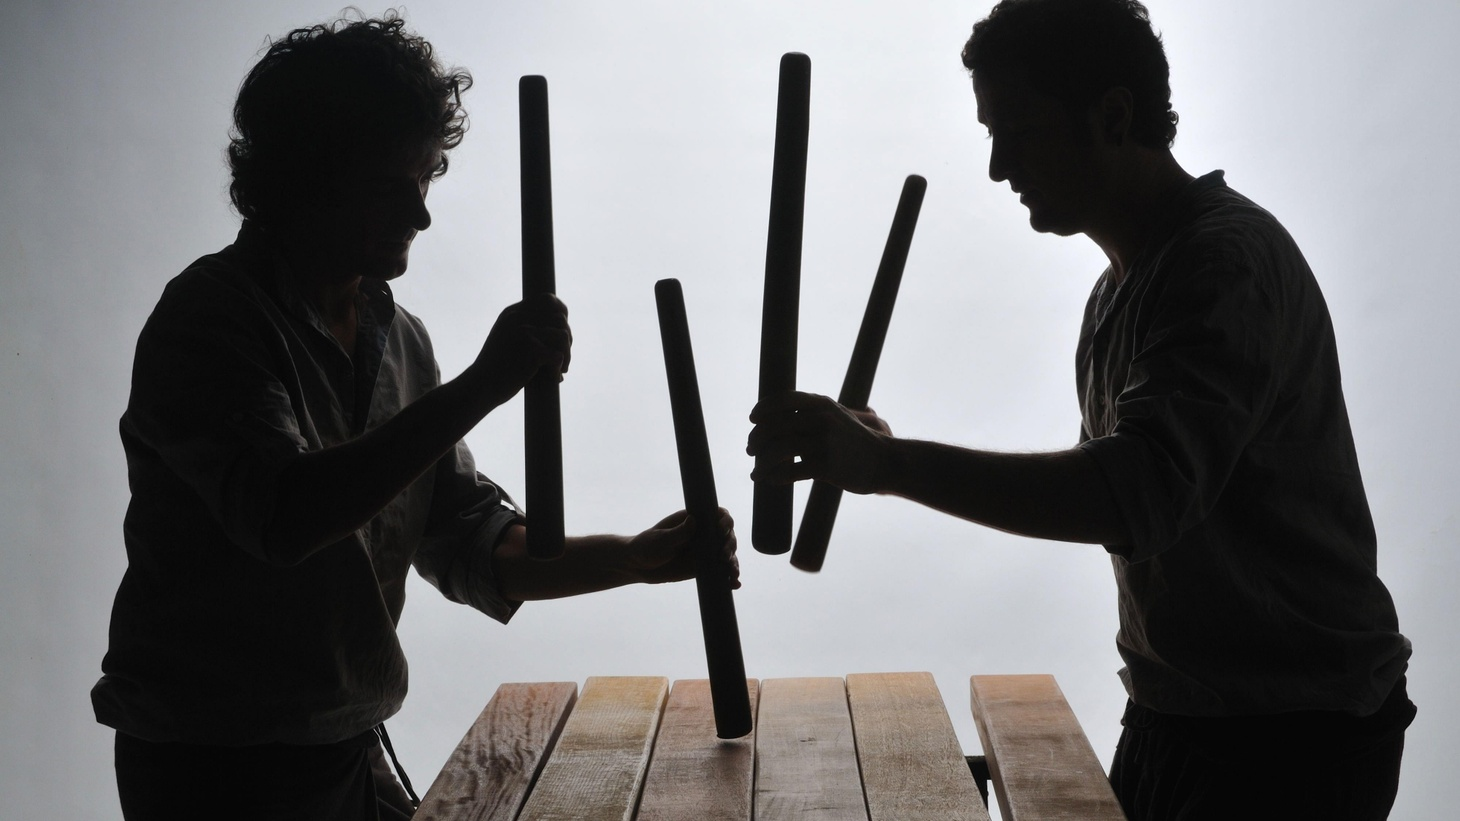 ...from Nomadak Tx. 